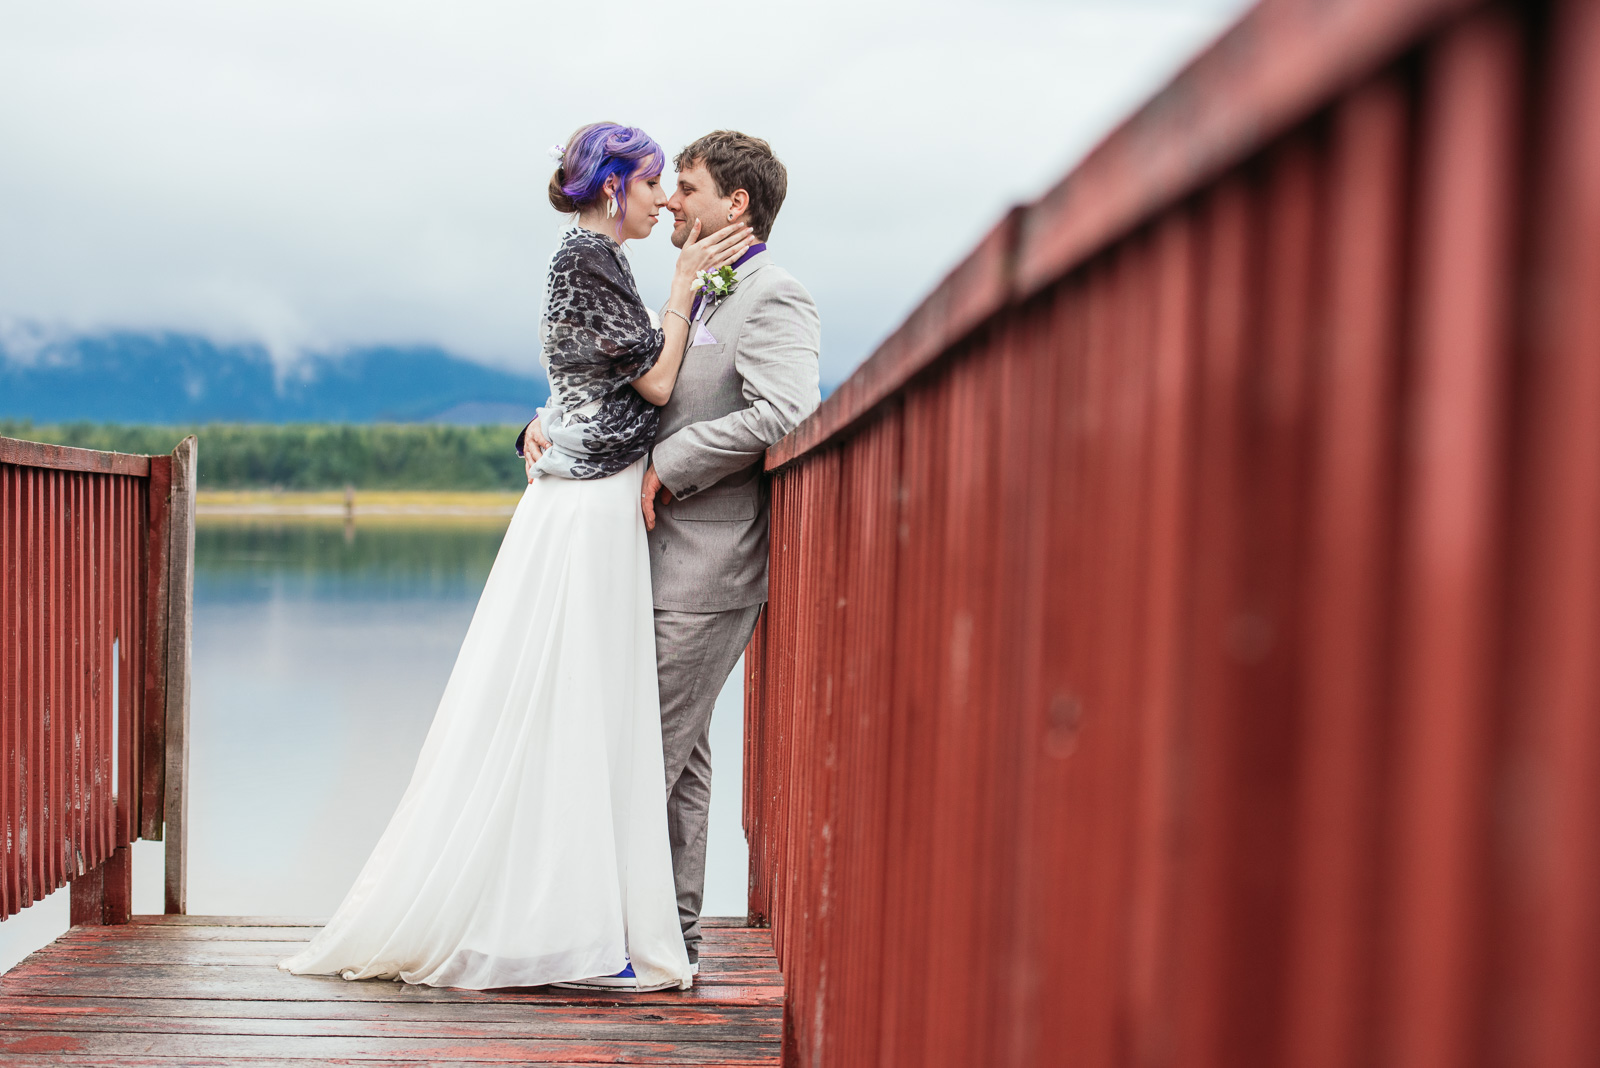 ^ This image from Travis & Kaylee's wedding has just about everything that we love at Pebble & Pine! Mountains, trees, ocean, a rustic red dock, thick cloud cover, and a couple that's crazy about each other. So glad that we found a little time on their wedding day to sneak off to this remote spot. Location scouting pays off!